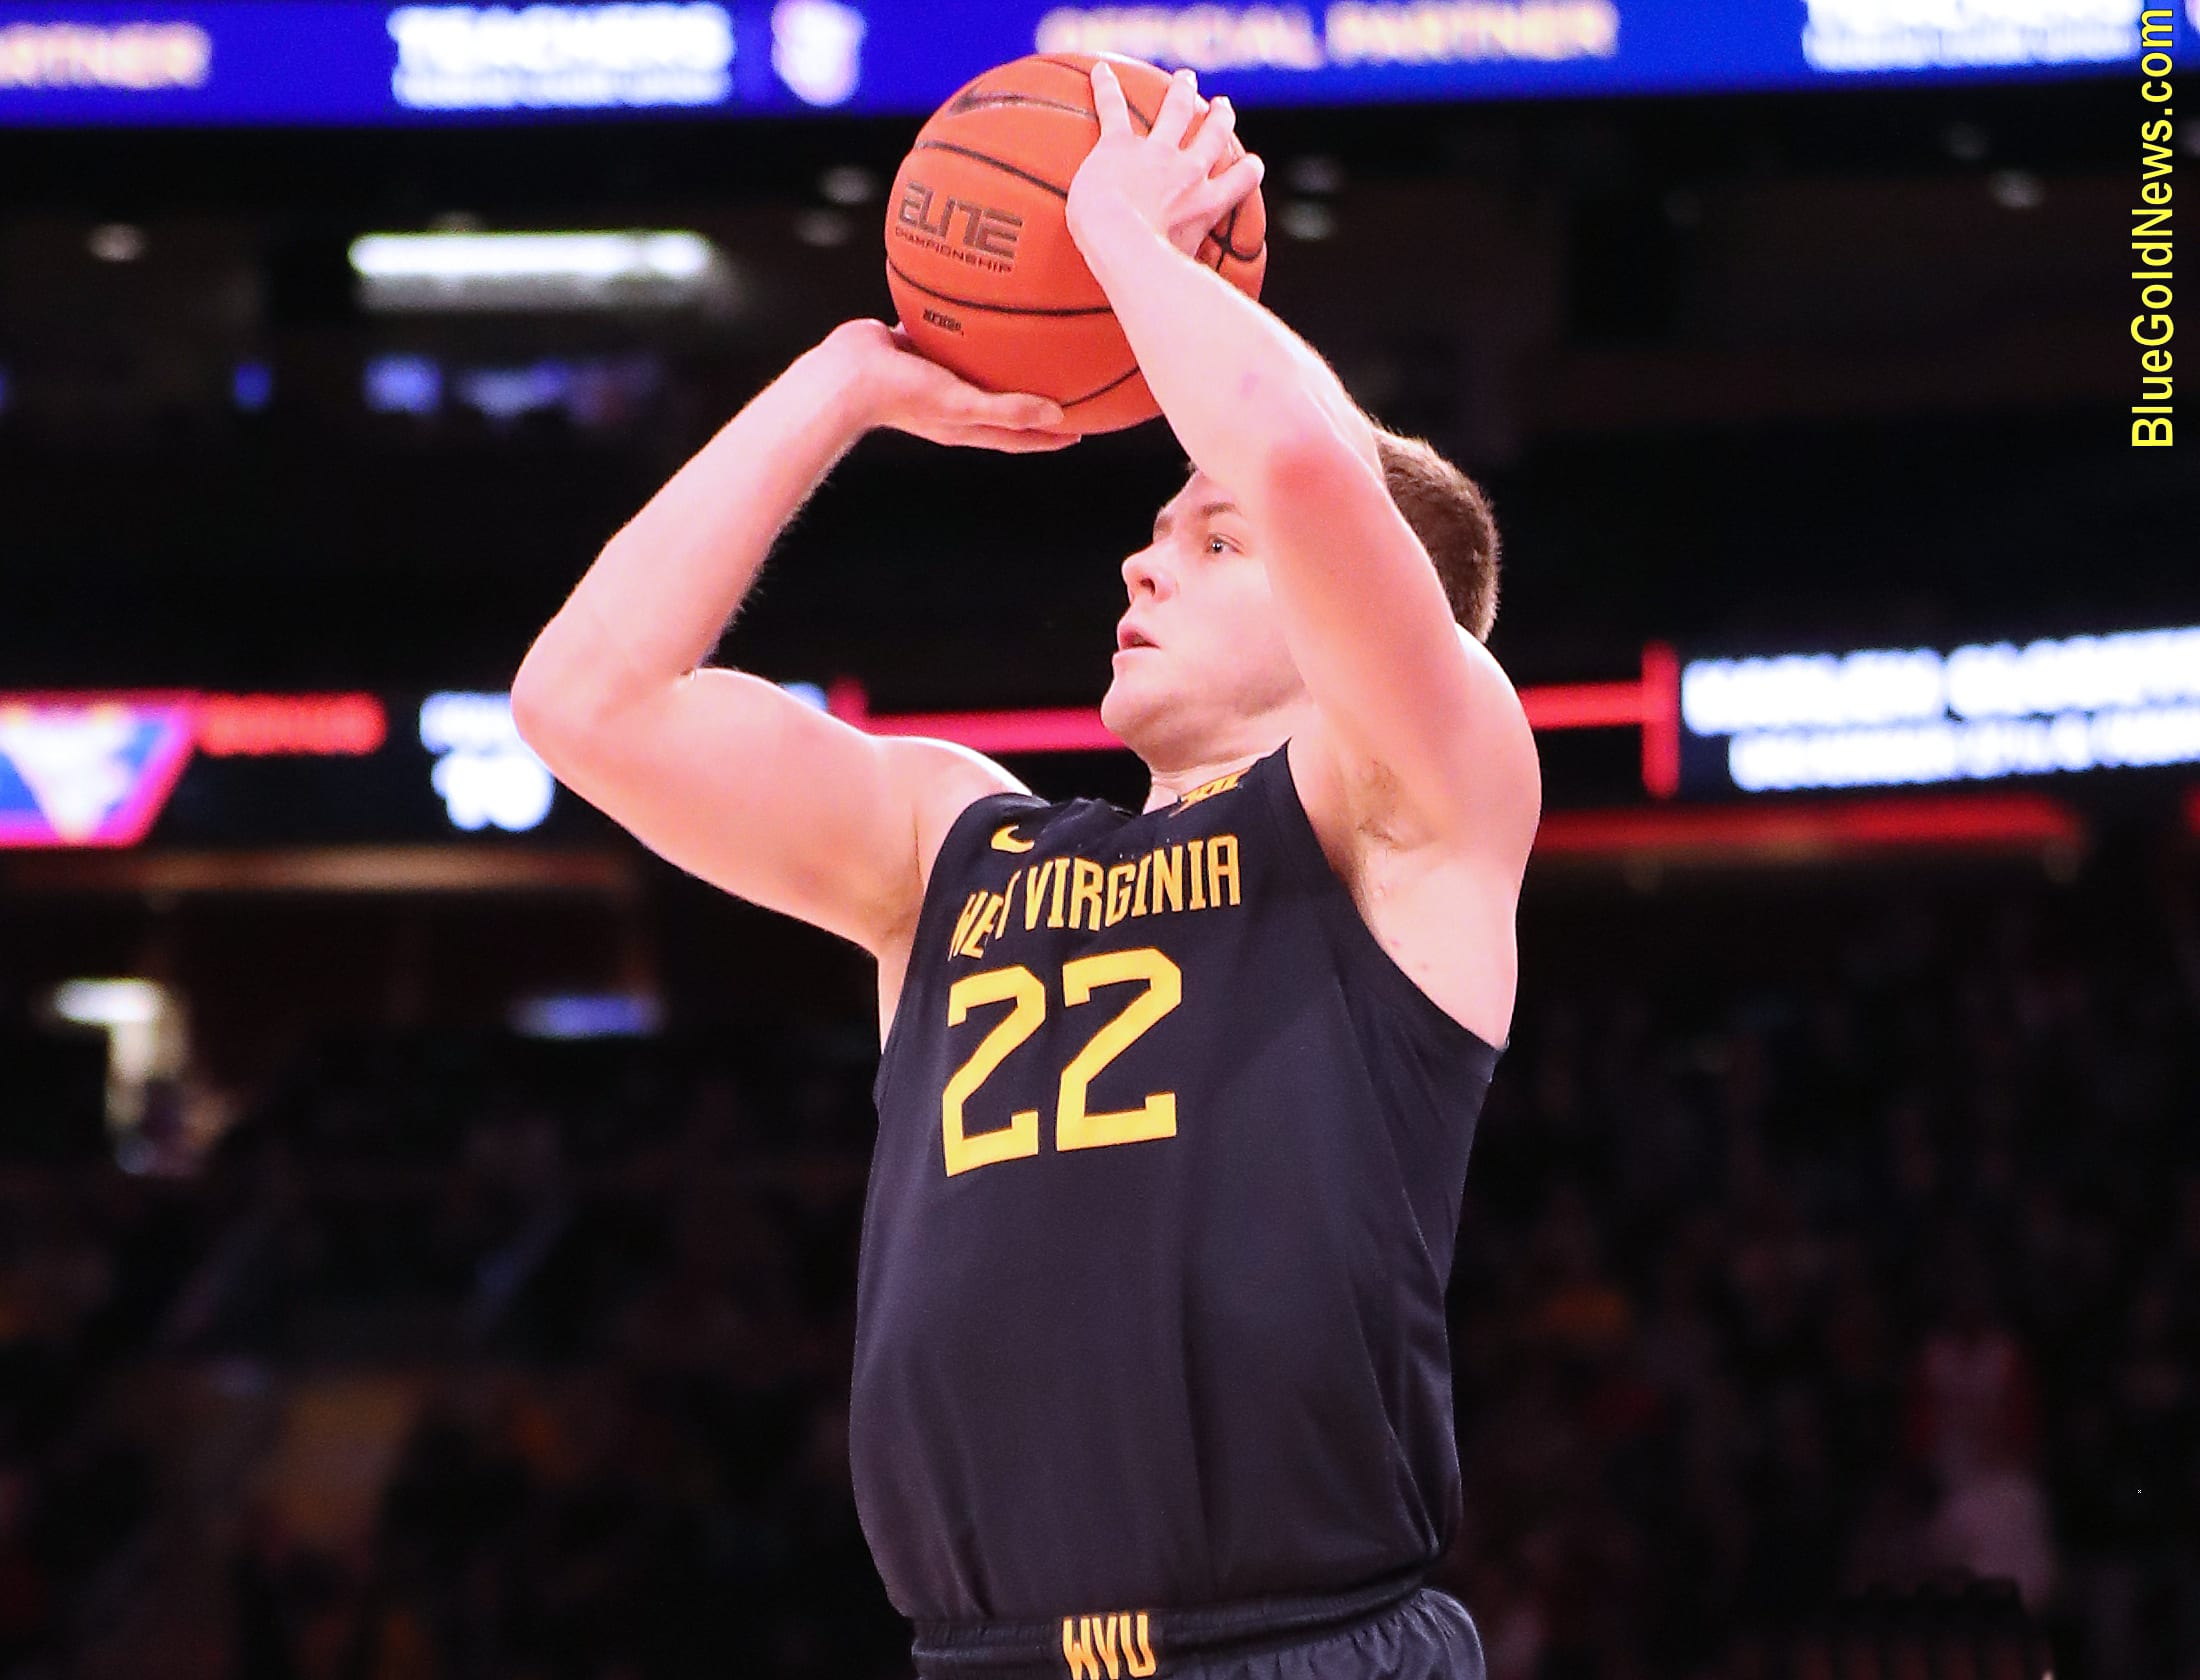 West Virginia guard Sean McNeil hits a late 3-pointer to tie the game against St. John's